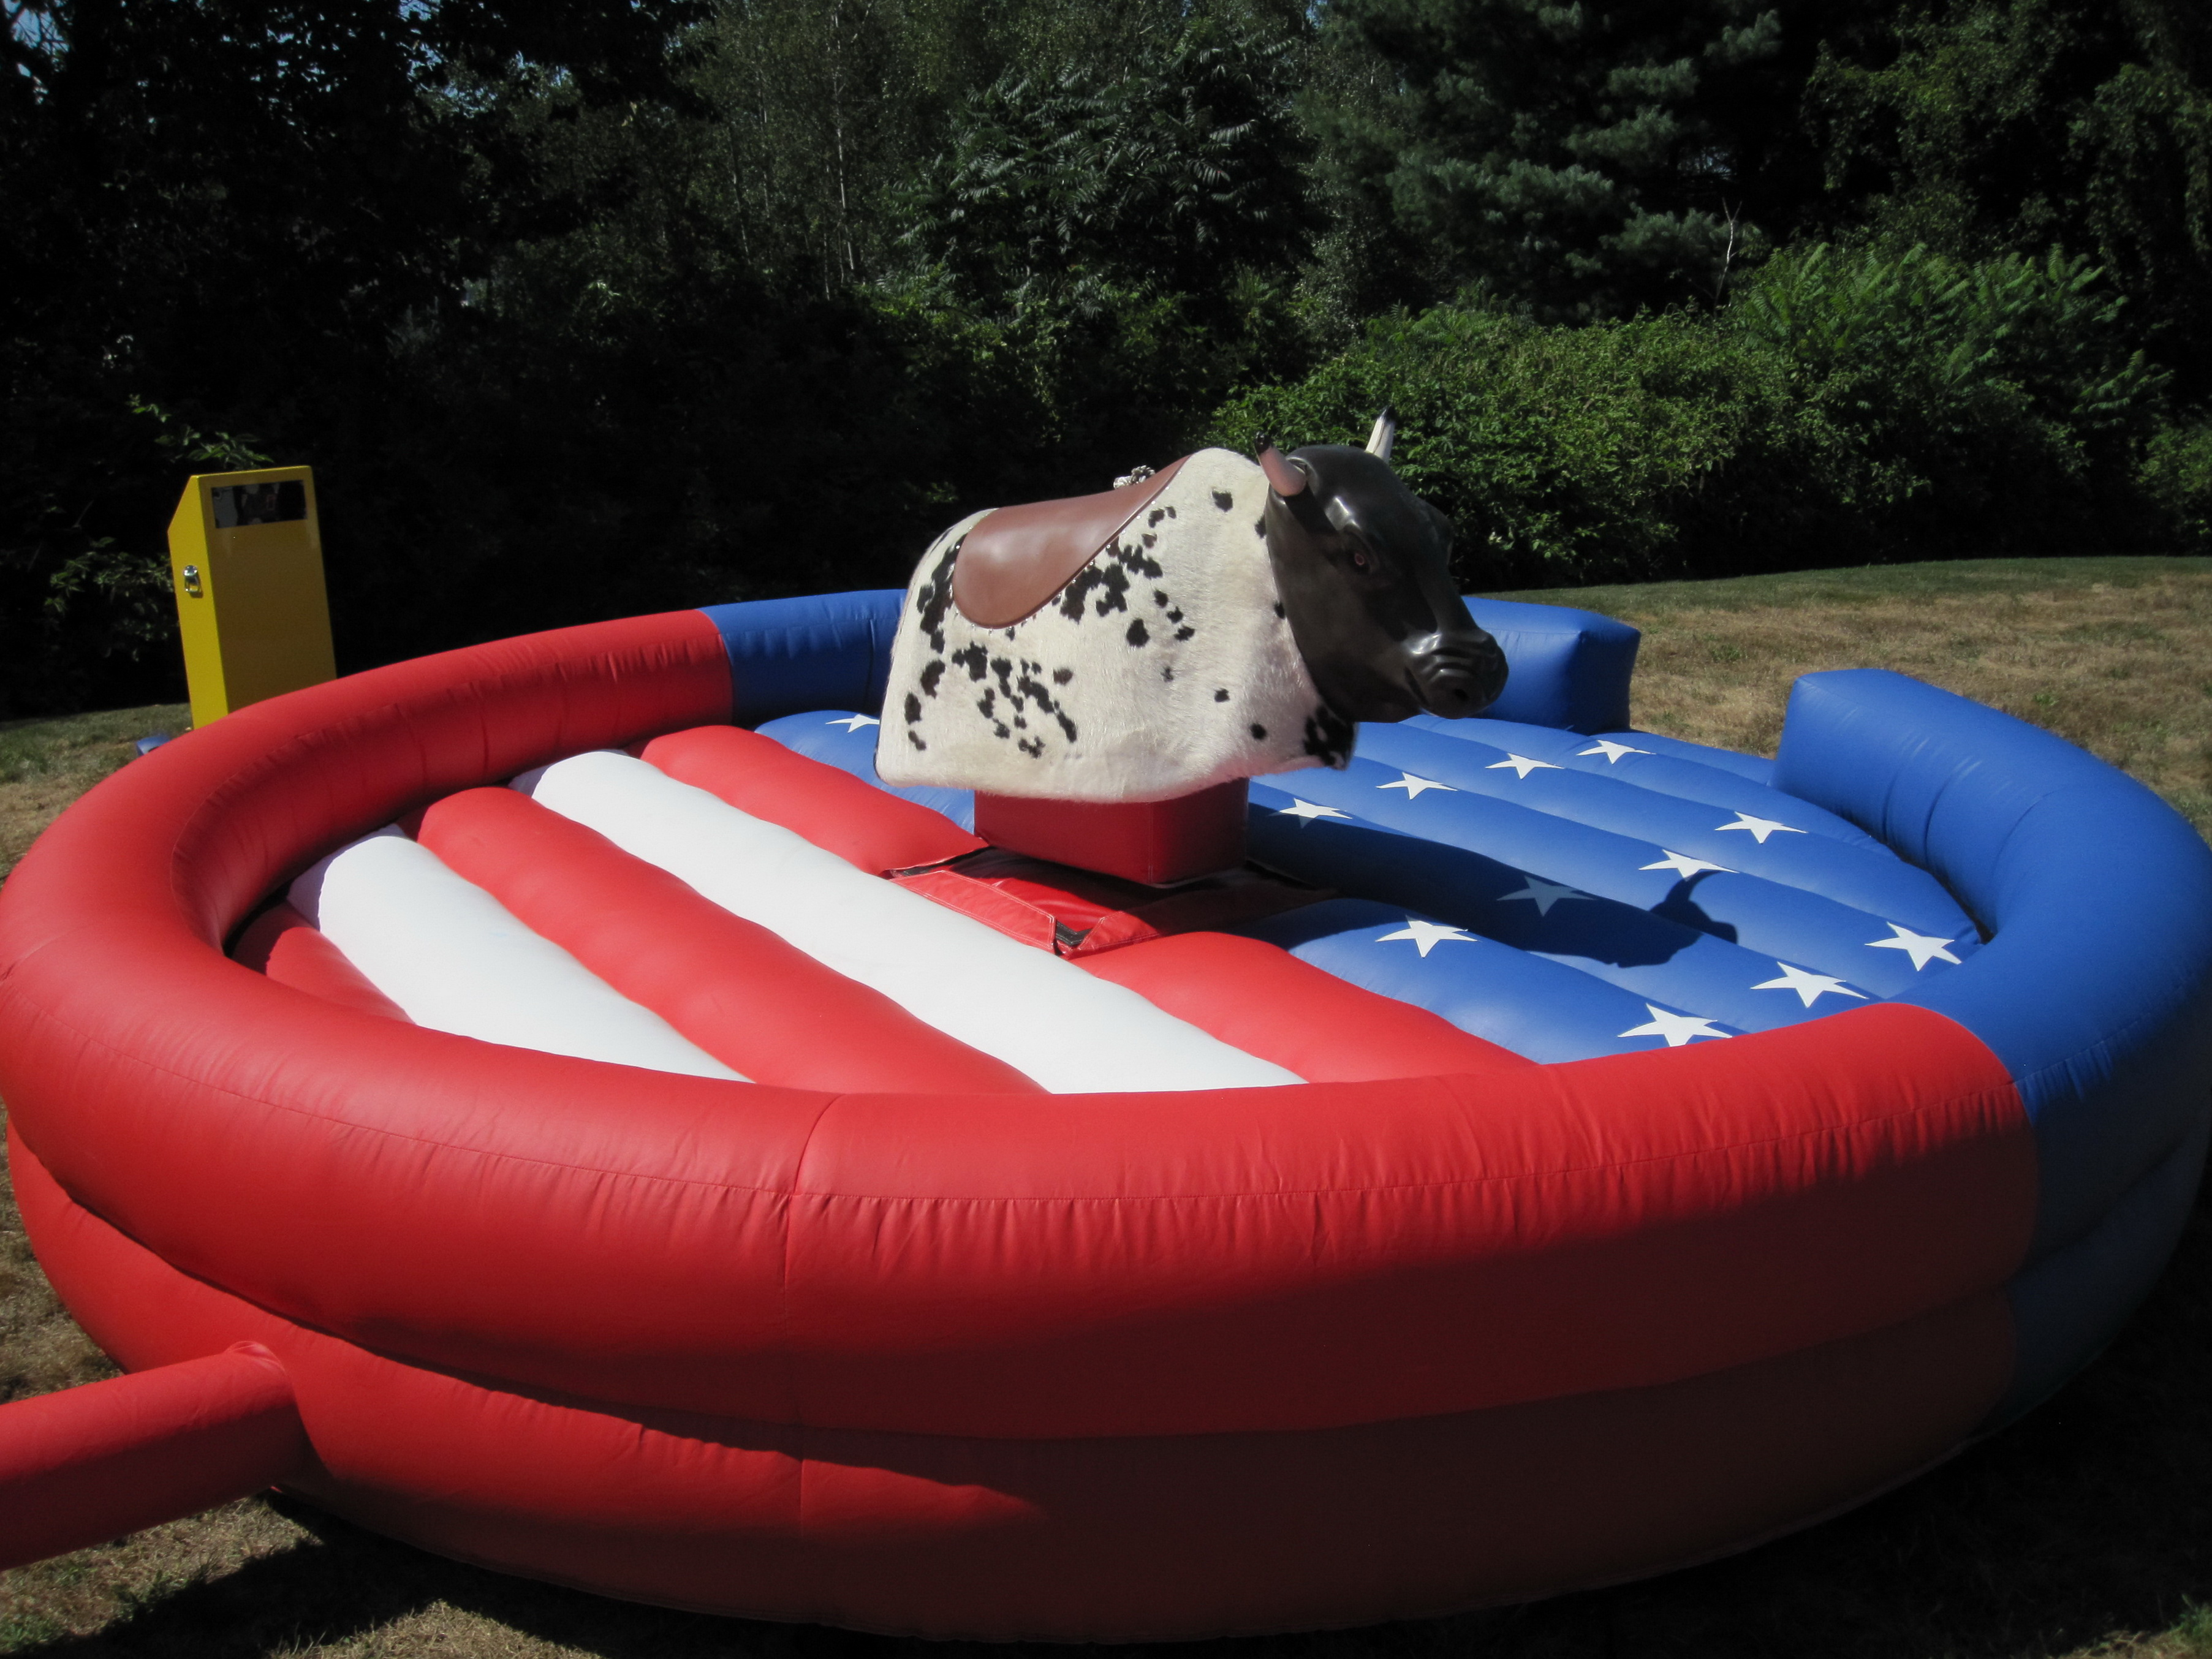 Pedro the Mechanical Bull